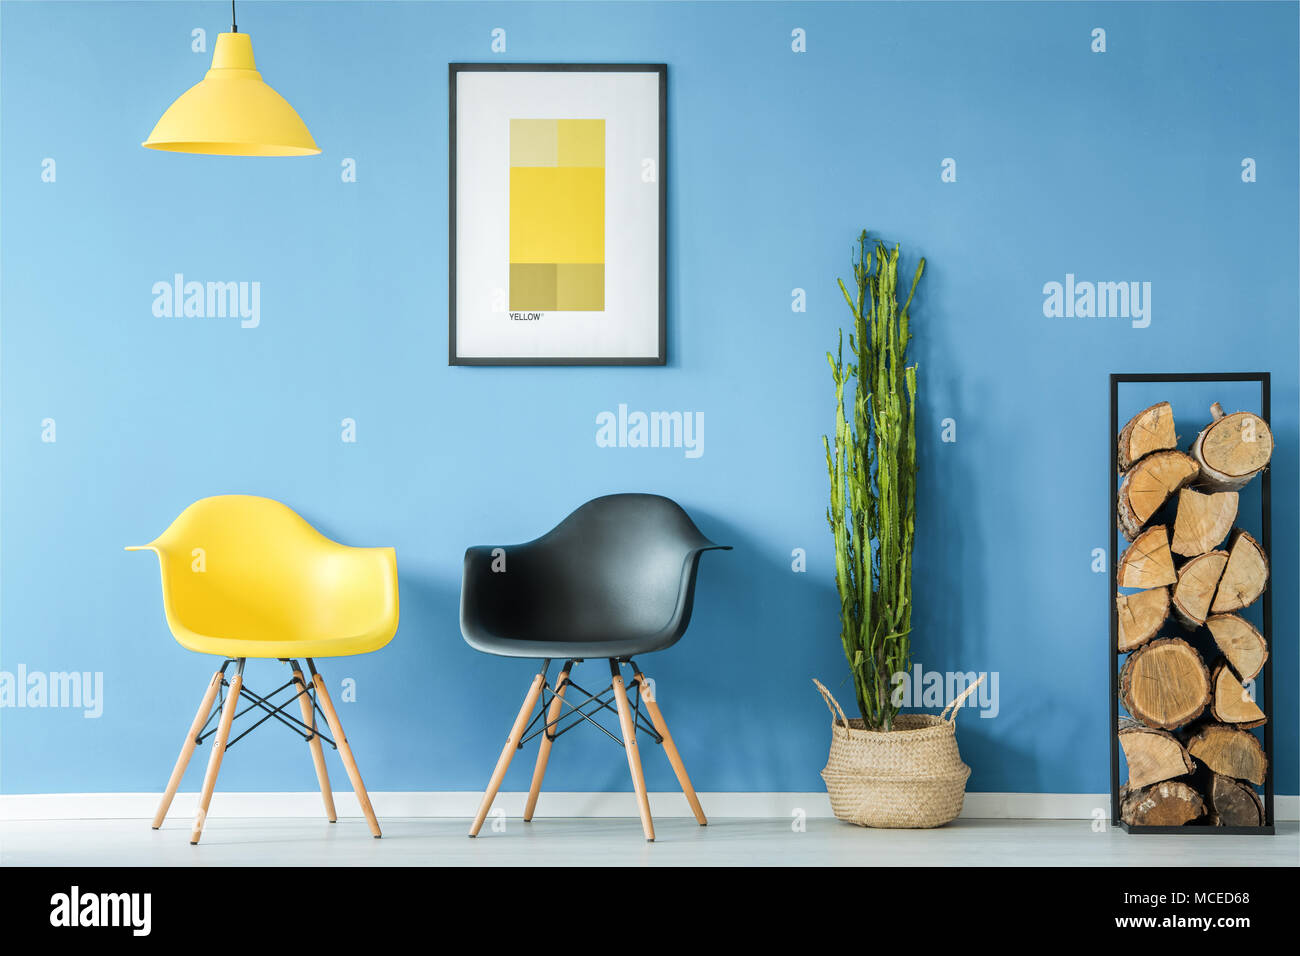 Waiting room interior in minimal style with contrasting yellow and black chairs, lamp, firewood, plant in a pot and a poster on a blue wall - Stock Image